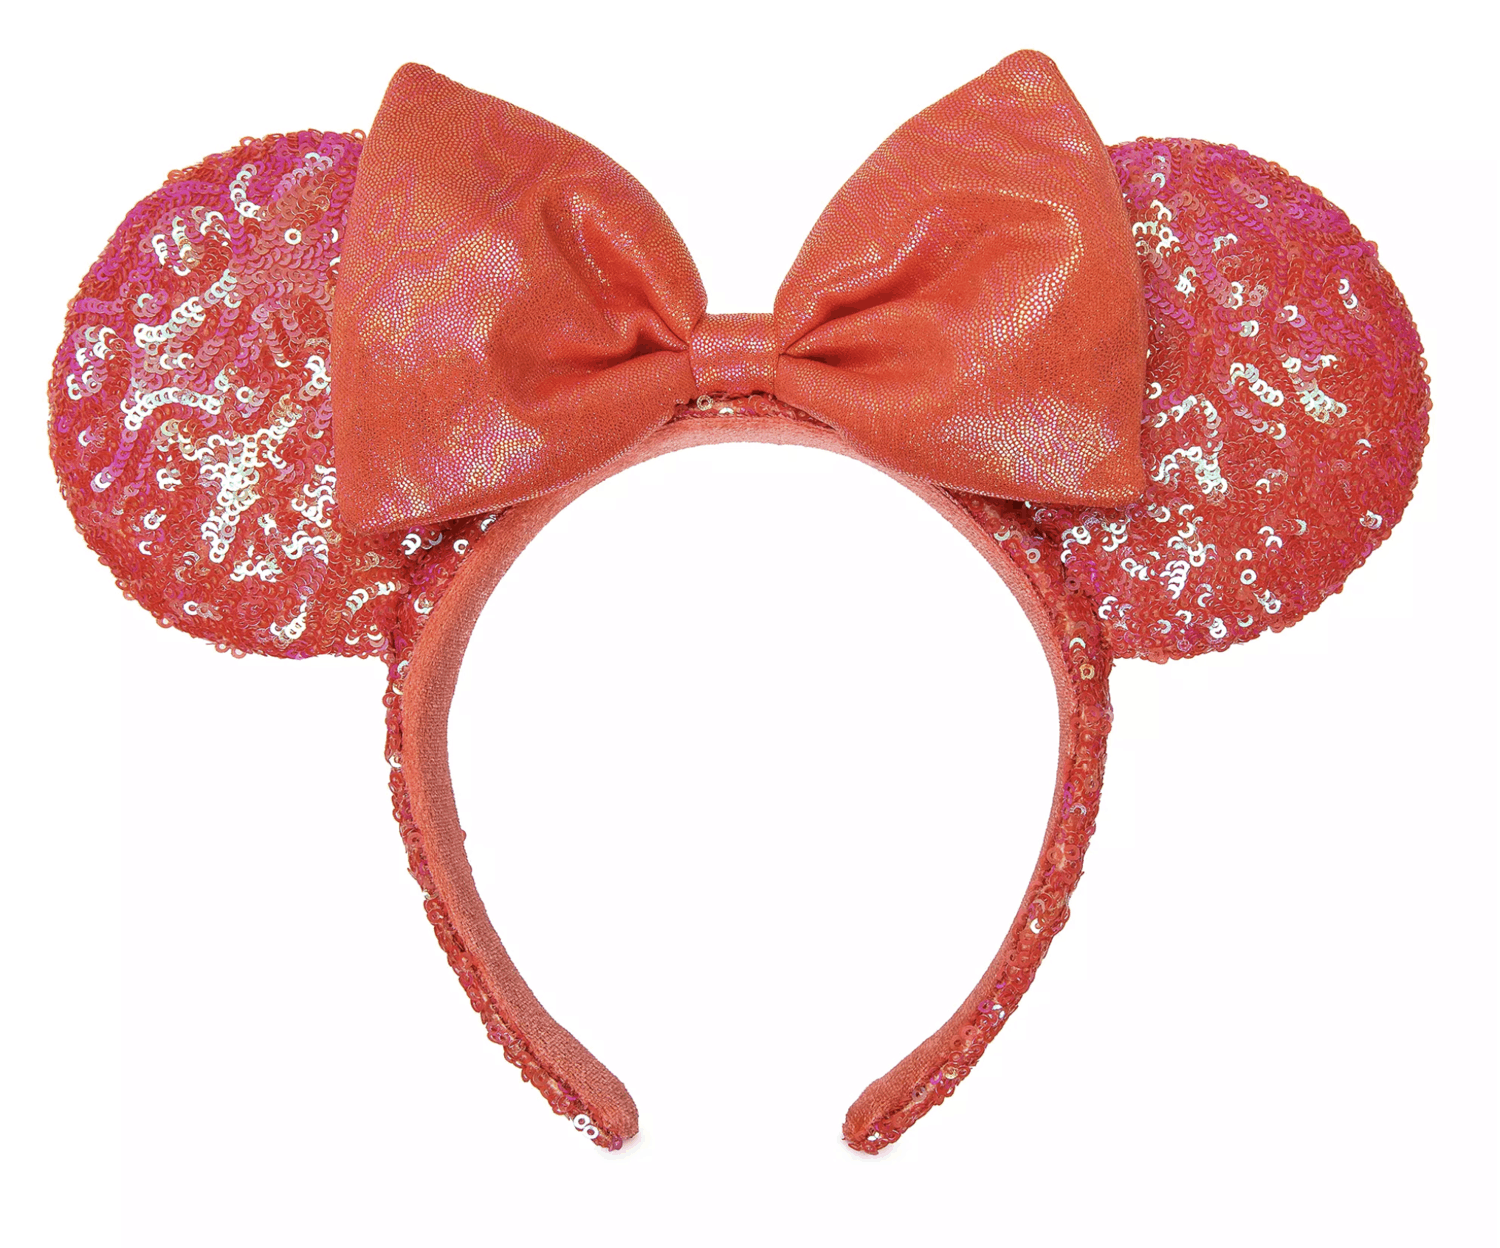 NEW Unicorn Minnie Ears on shopDisney! 8